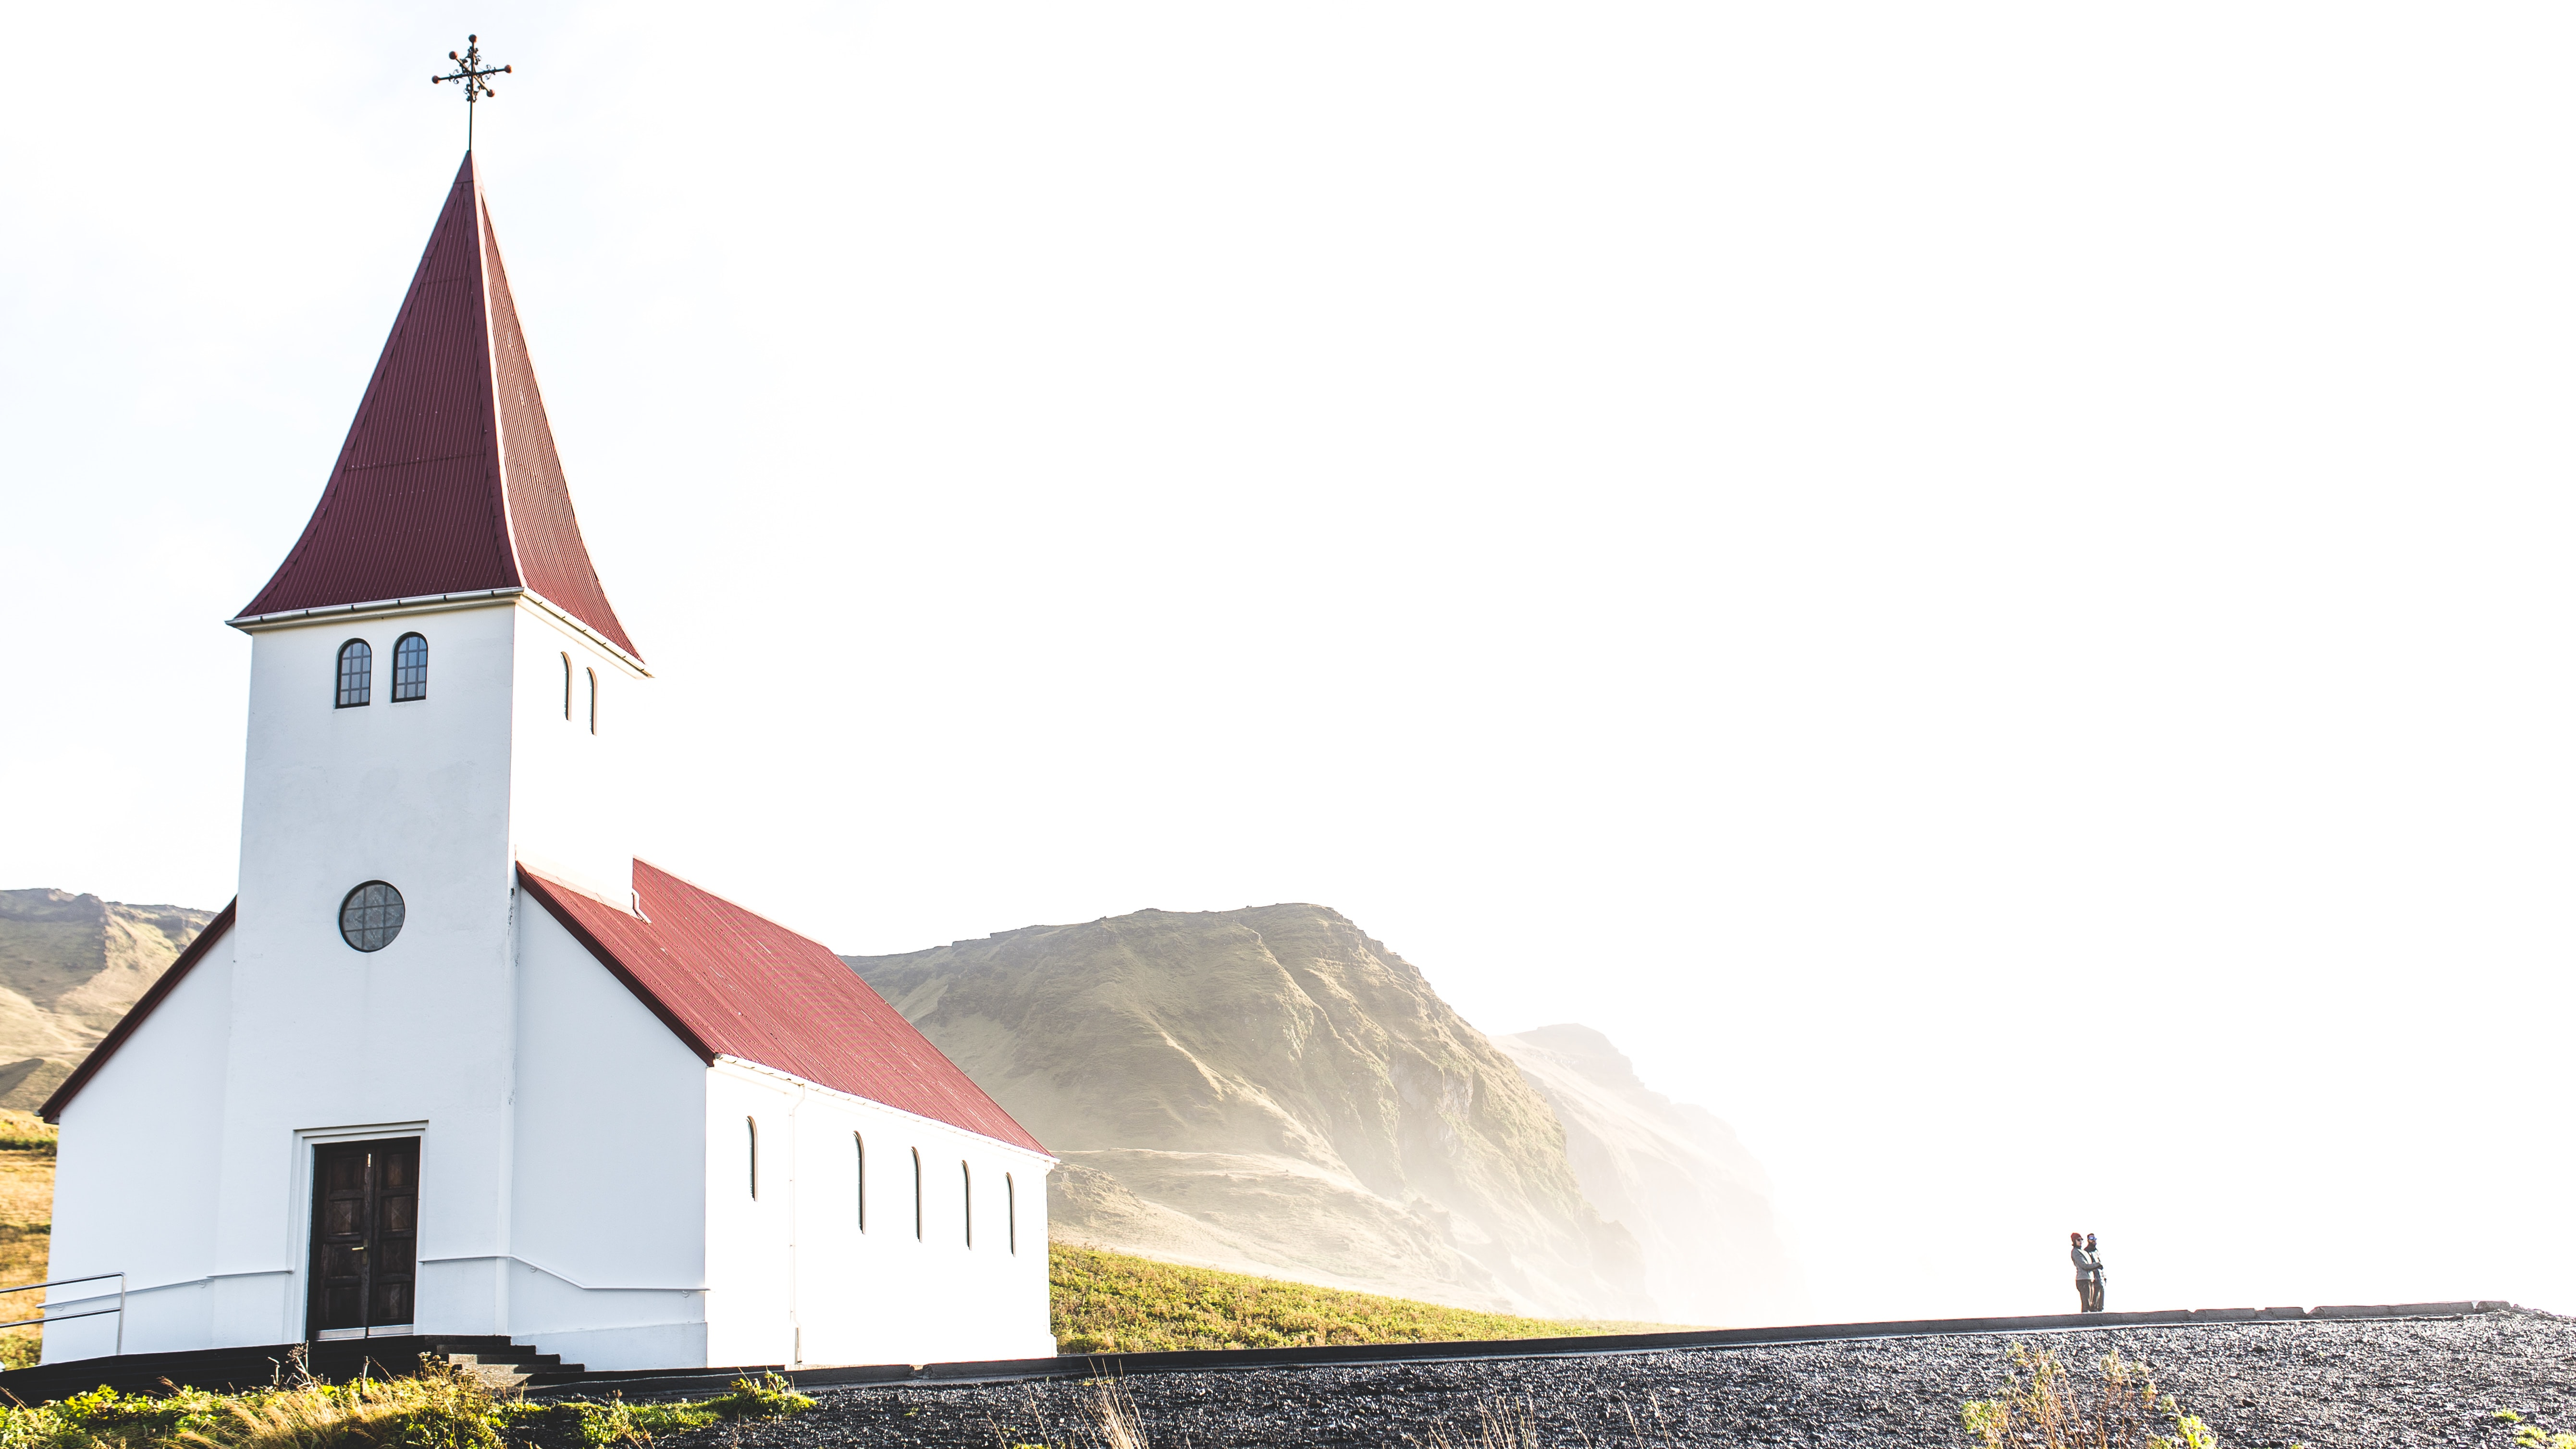 red and white concrete church near gray mountains under cloudy sky